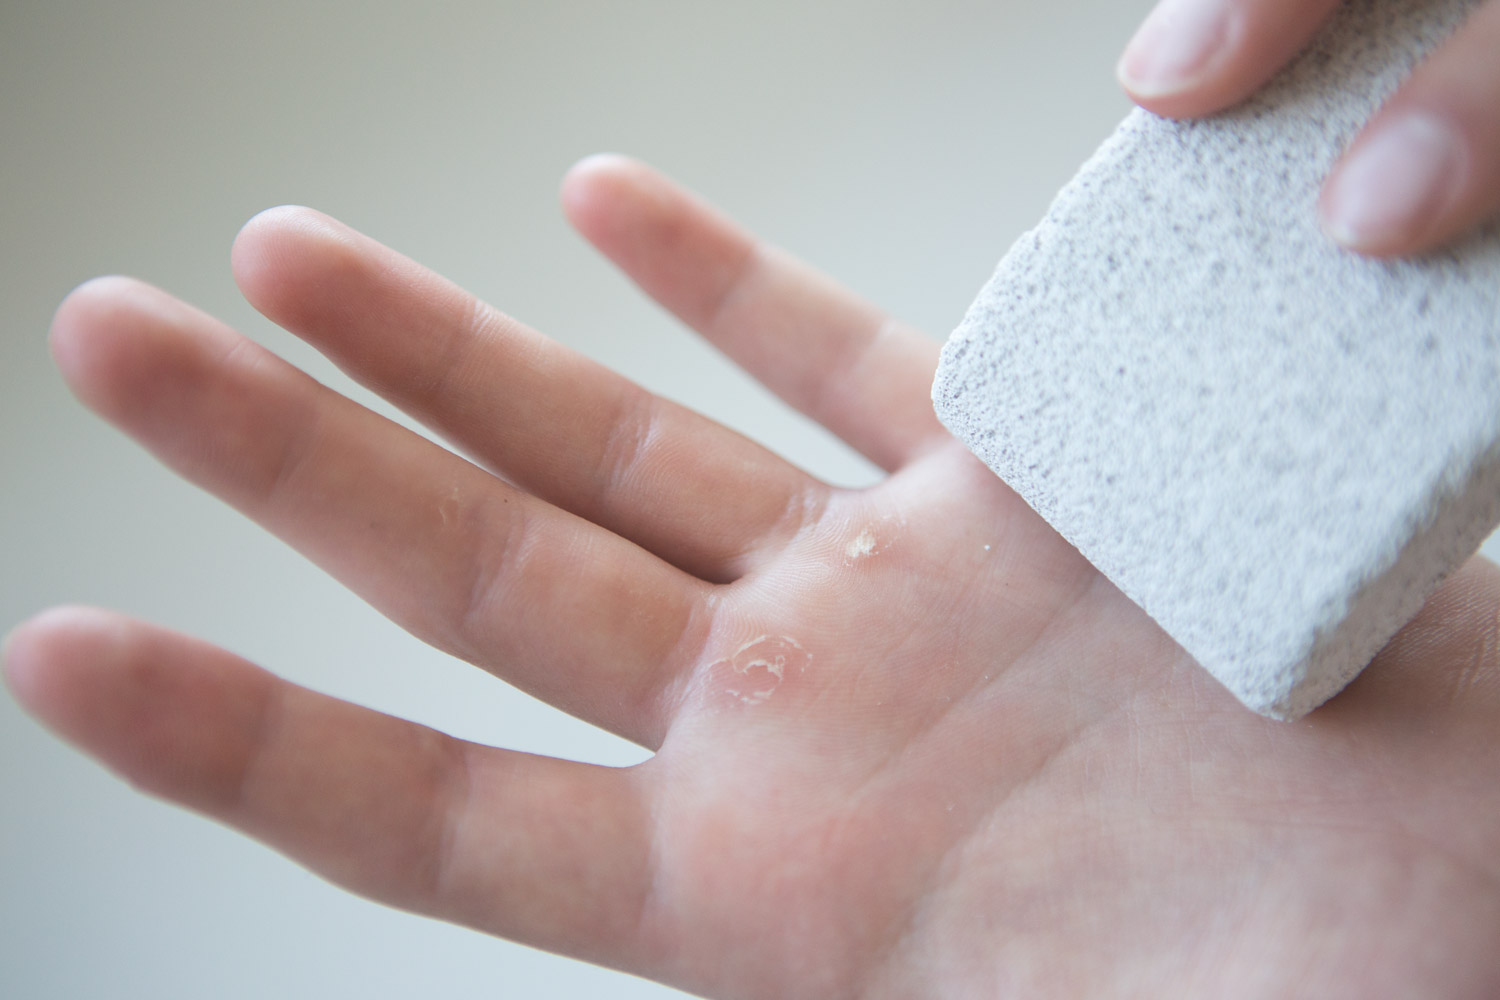 Pumice stone for the hands